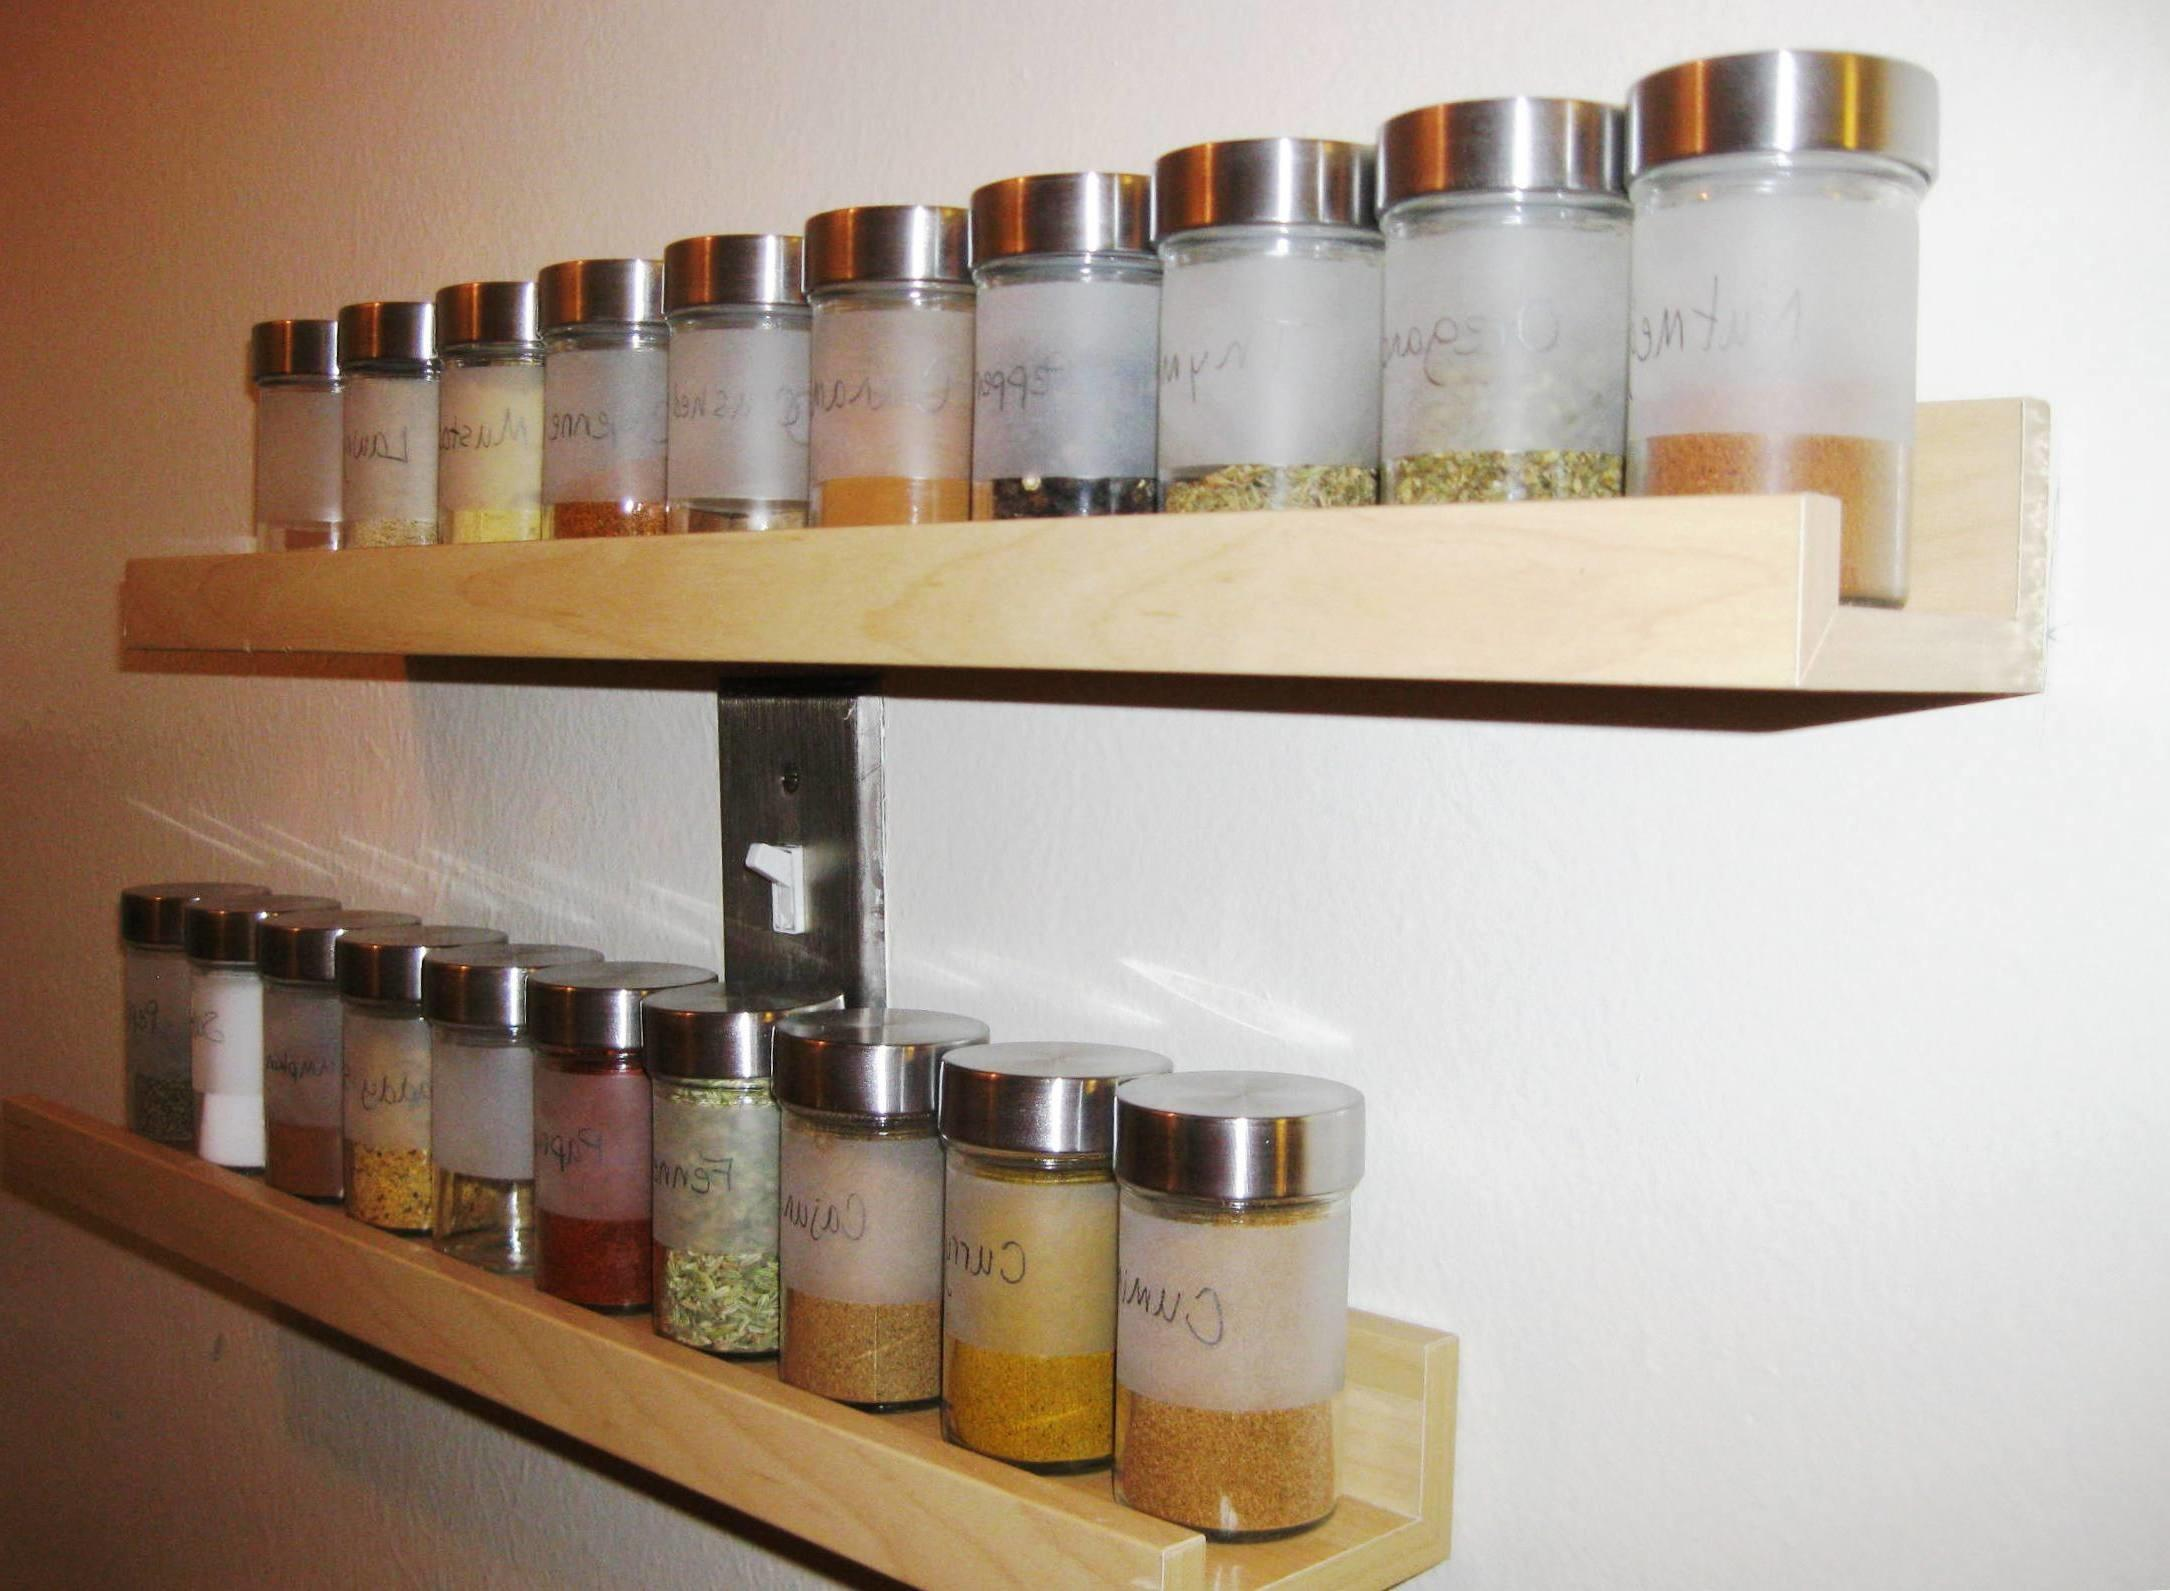 Wonderful Wall Hanging Spice Racks Bring Tidy Look Your